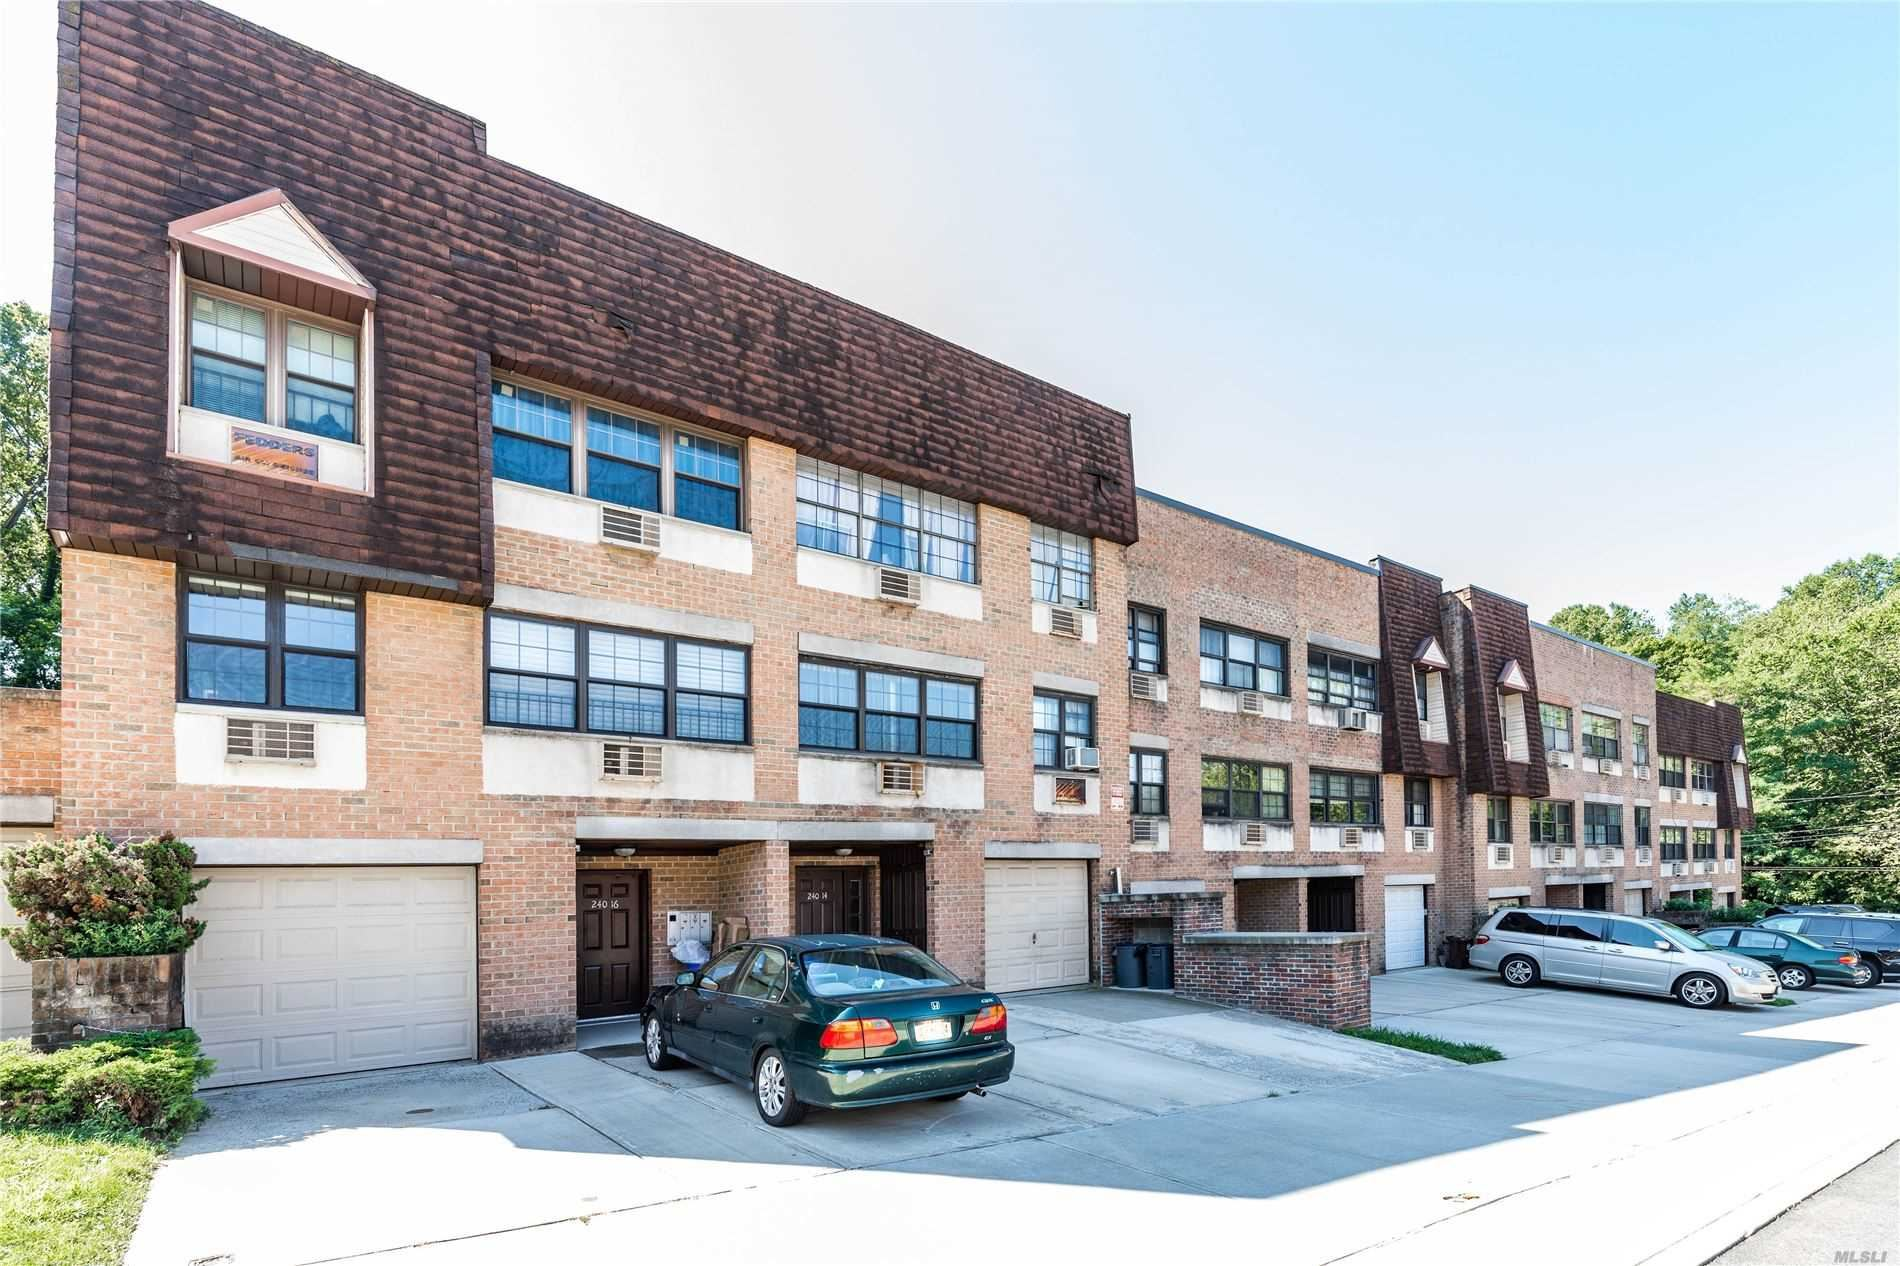 240-16 70 Avenue, Douglaston, NY 11362 - MLS#: 3239615